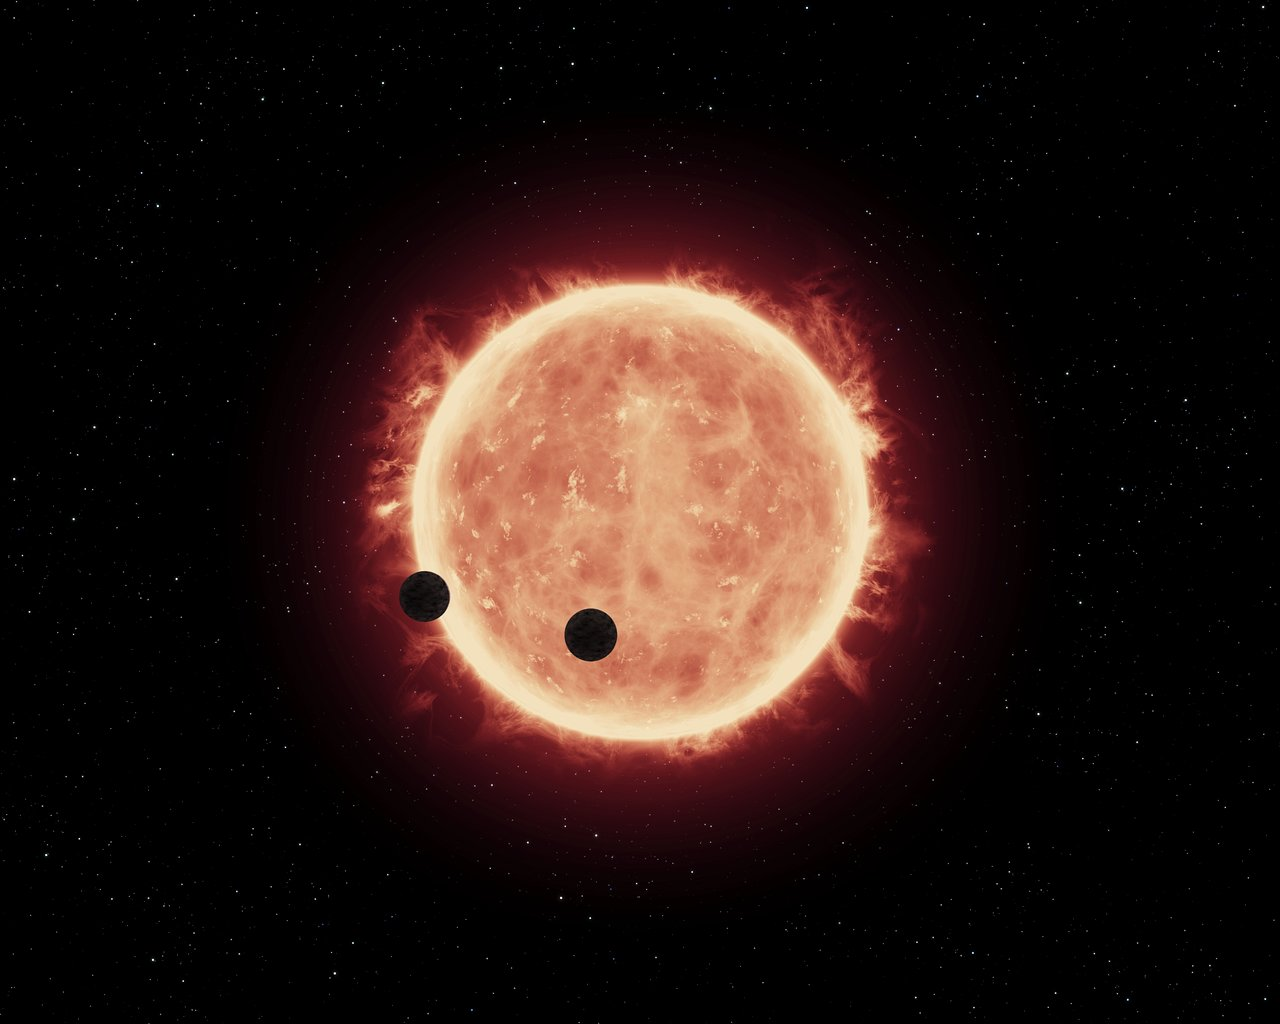 Artist's view of planets transiting red dwarf star in TRAPPIST-1 system